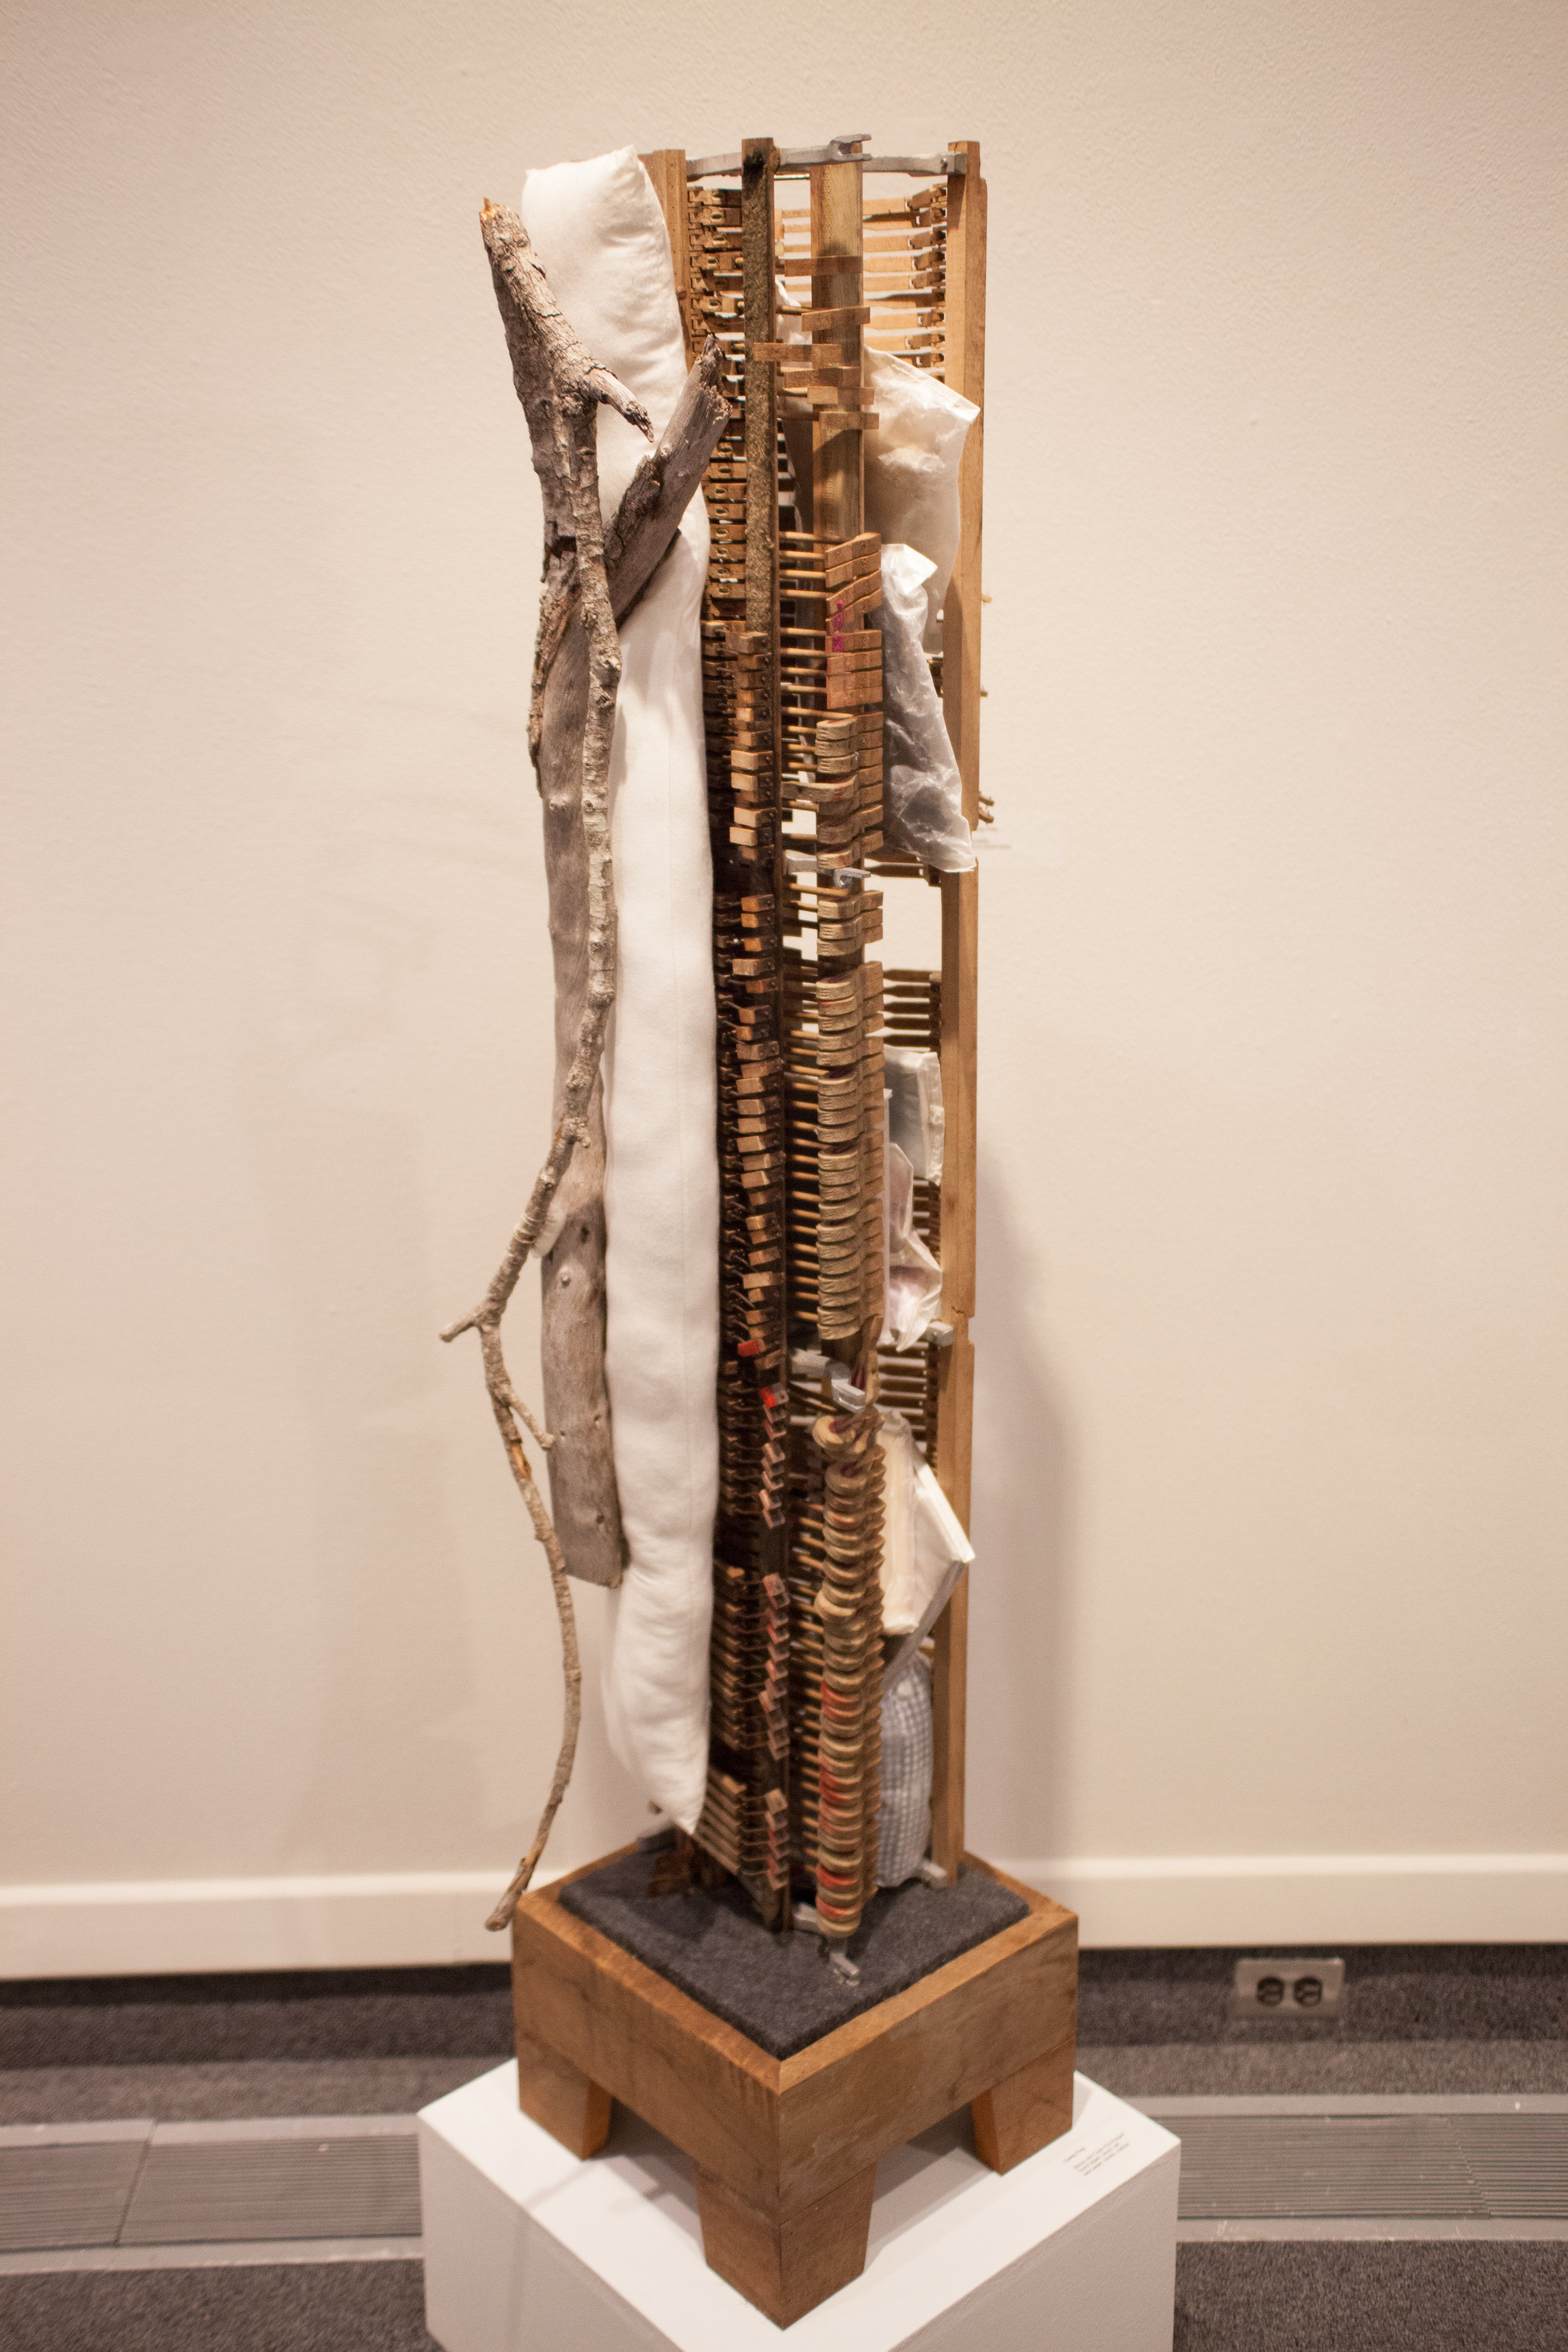 Cage and Beuys Rummaged   piano, wood, twine, branch, fabric, books, clothing, drawing, wax paper   13x61x13